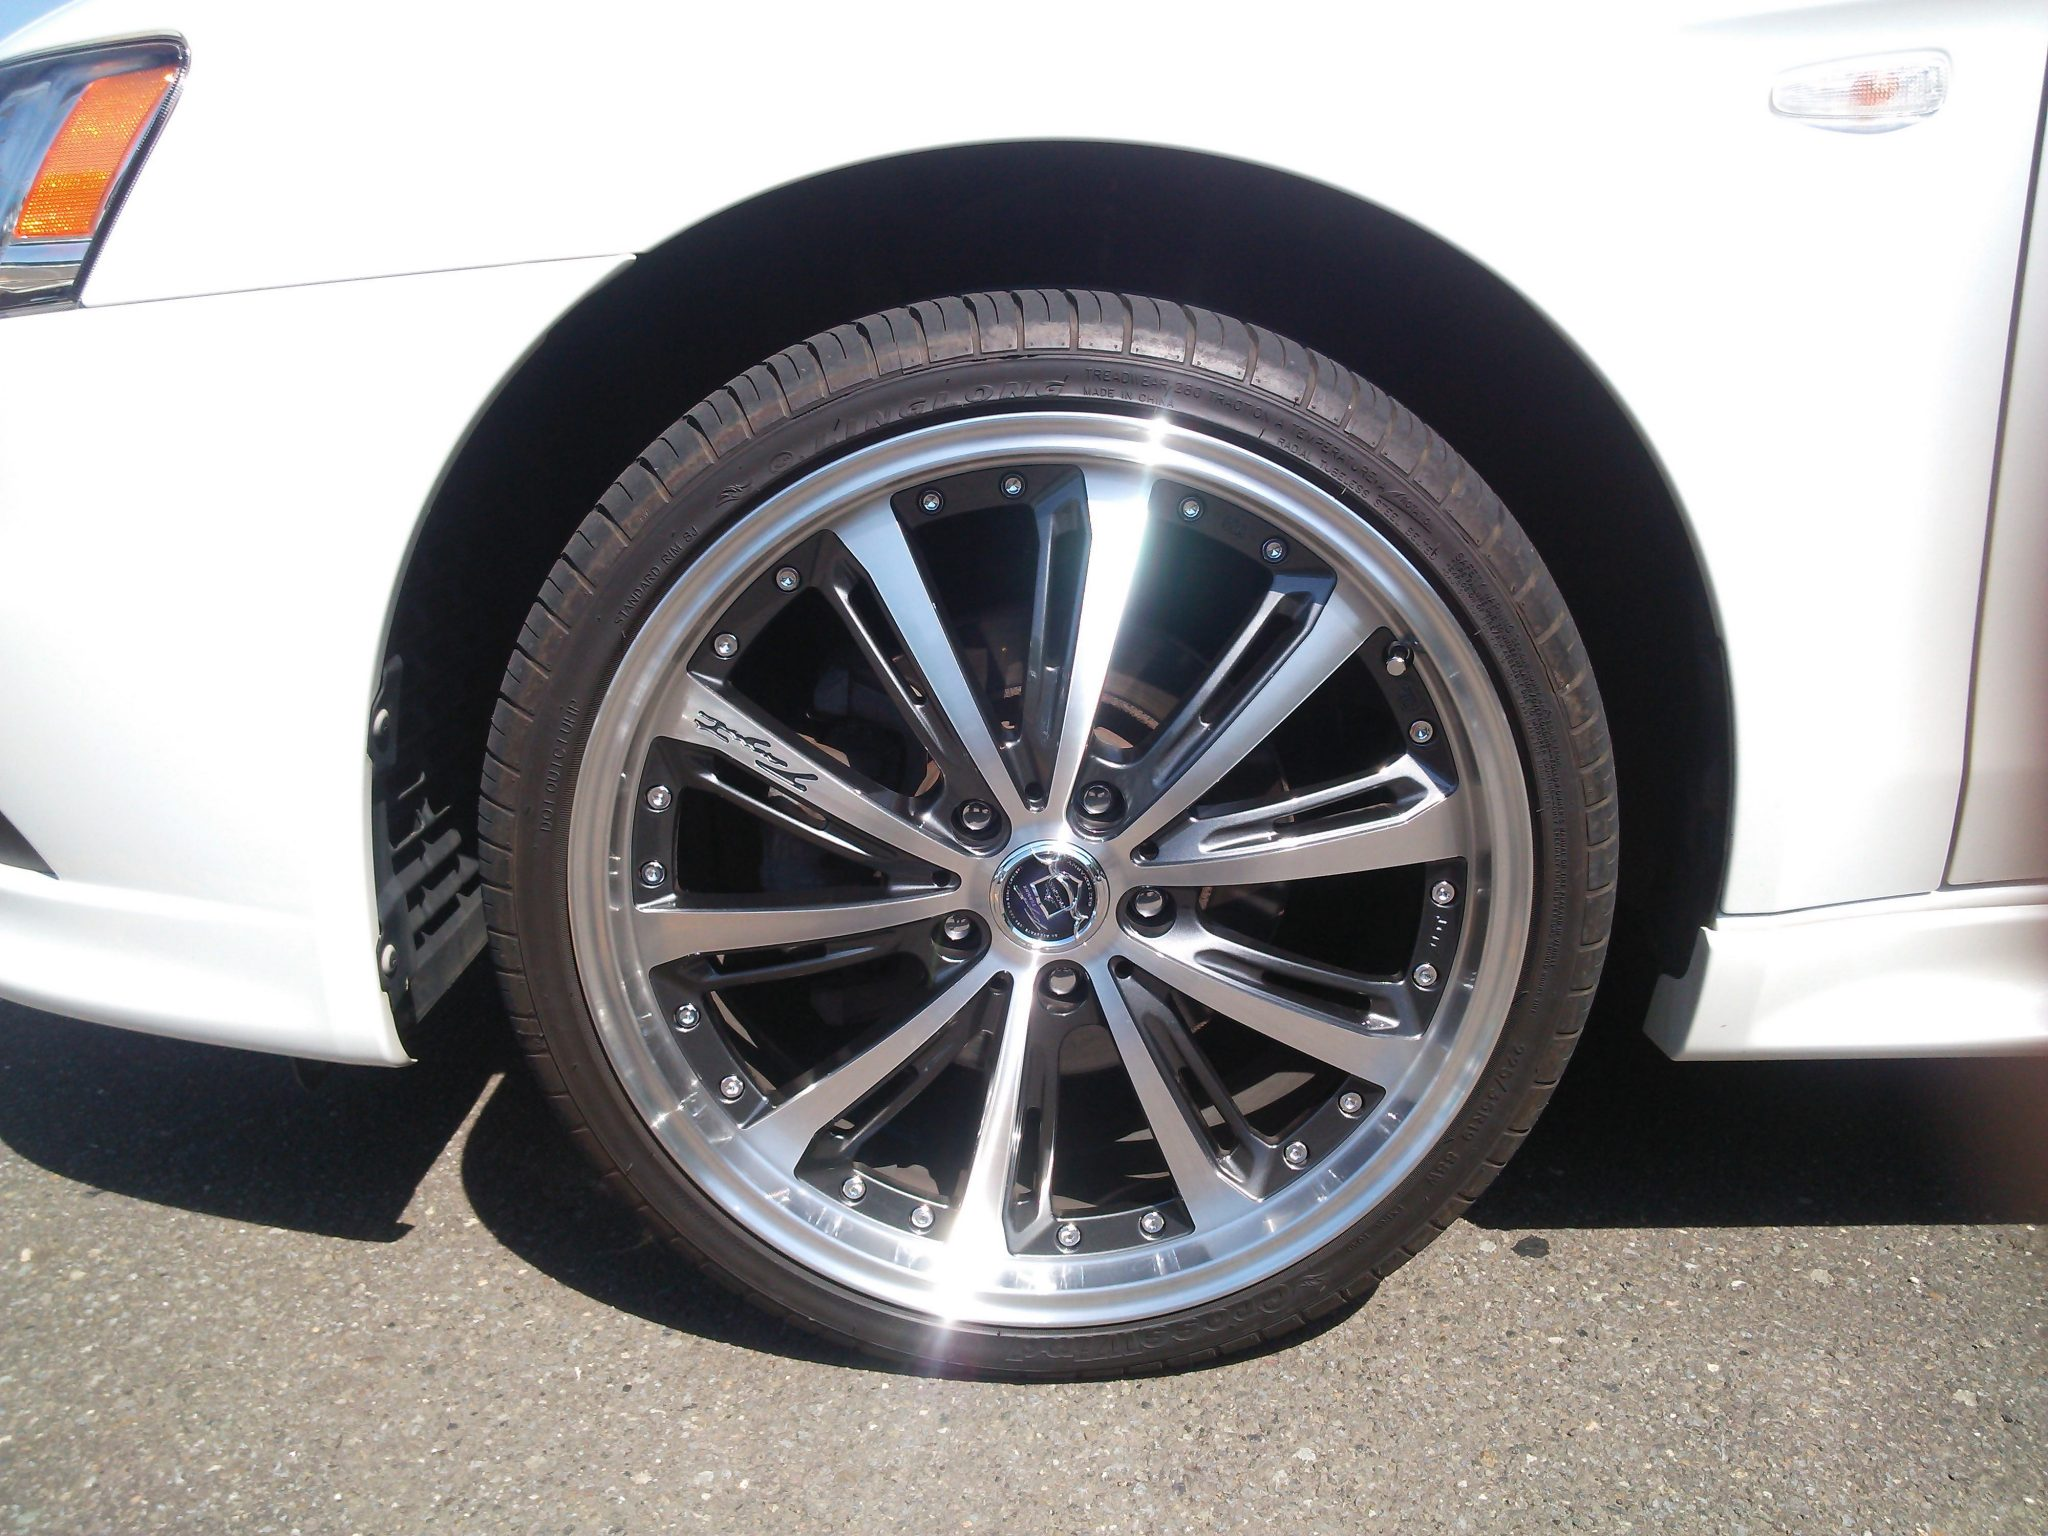 cy4a_tire_2